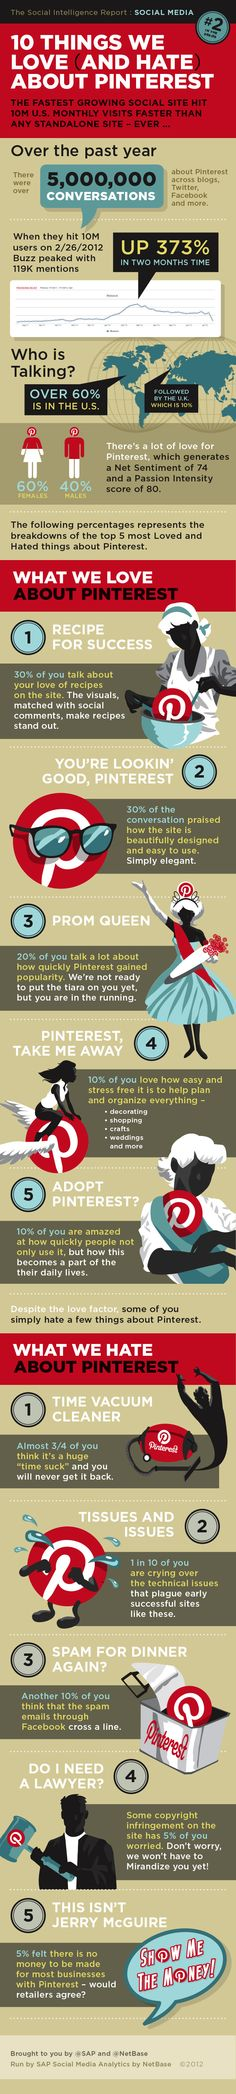 Infographic | 10 things we love (and hate) about Pinterest